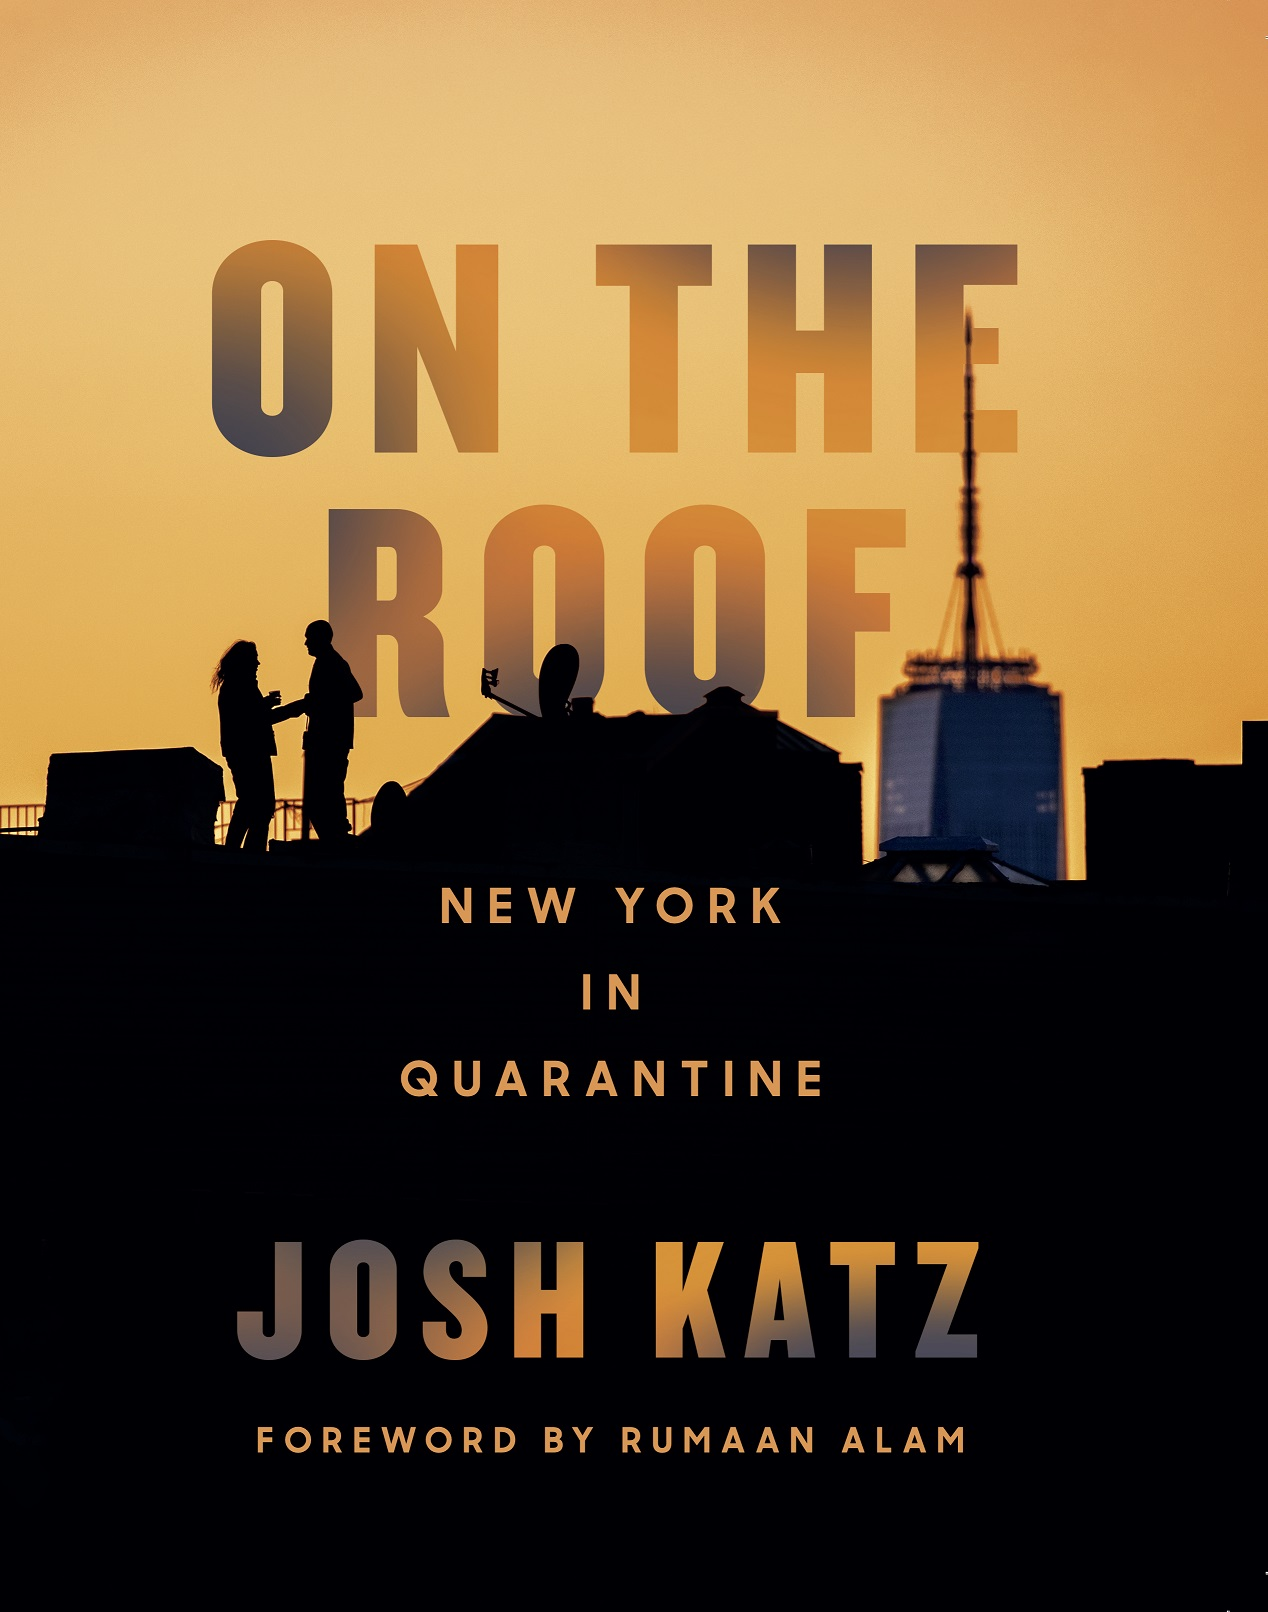 Book Launch: On the Roof by Josh Katz in conversation with Craig Hubert